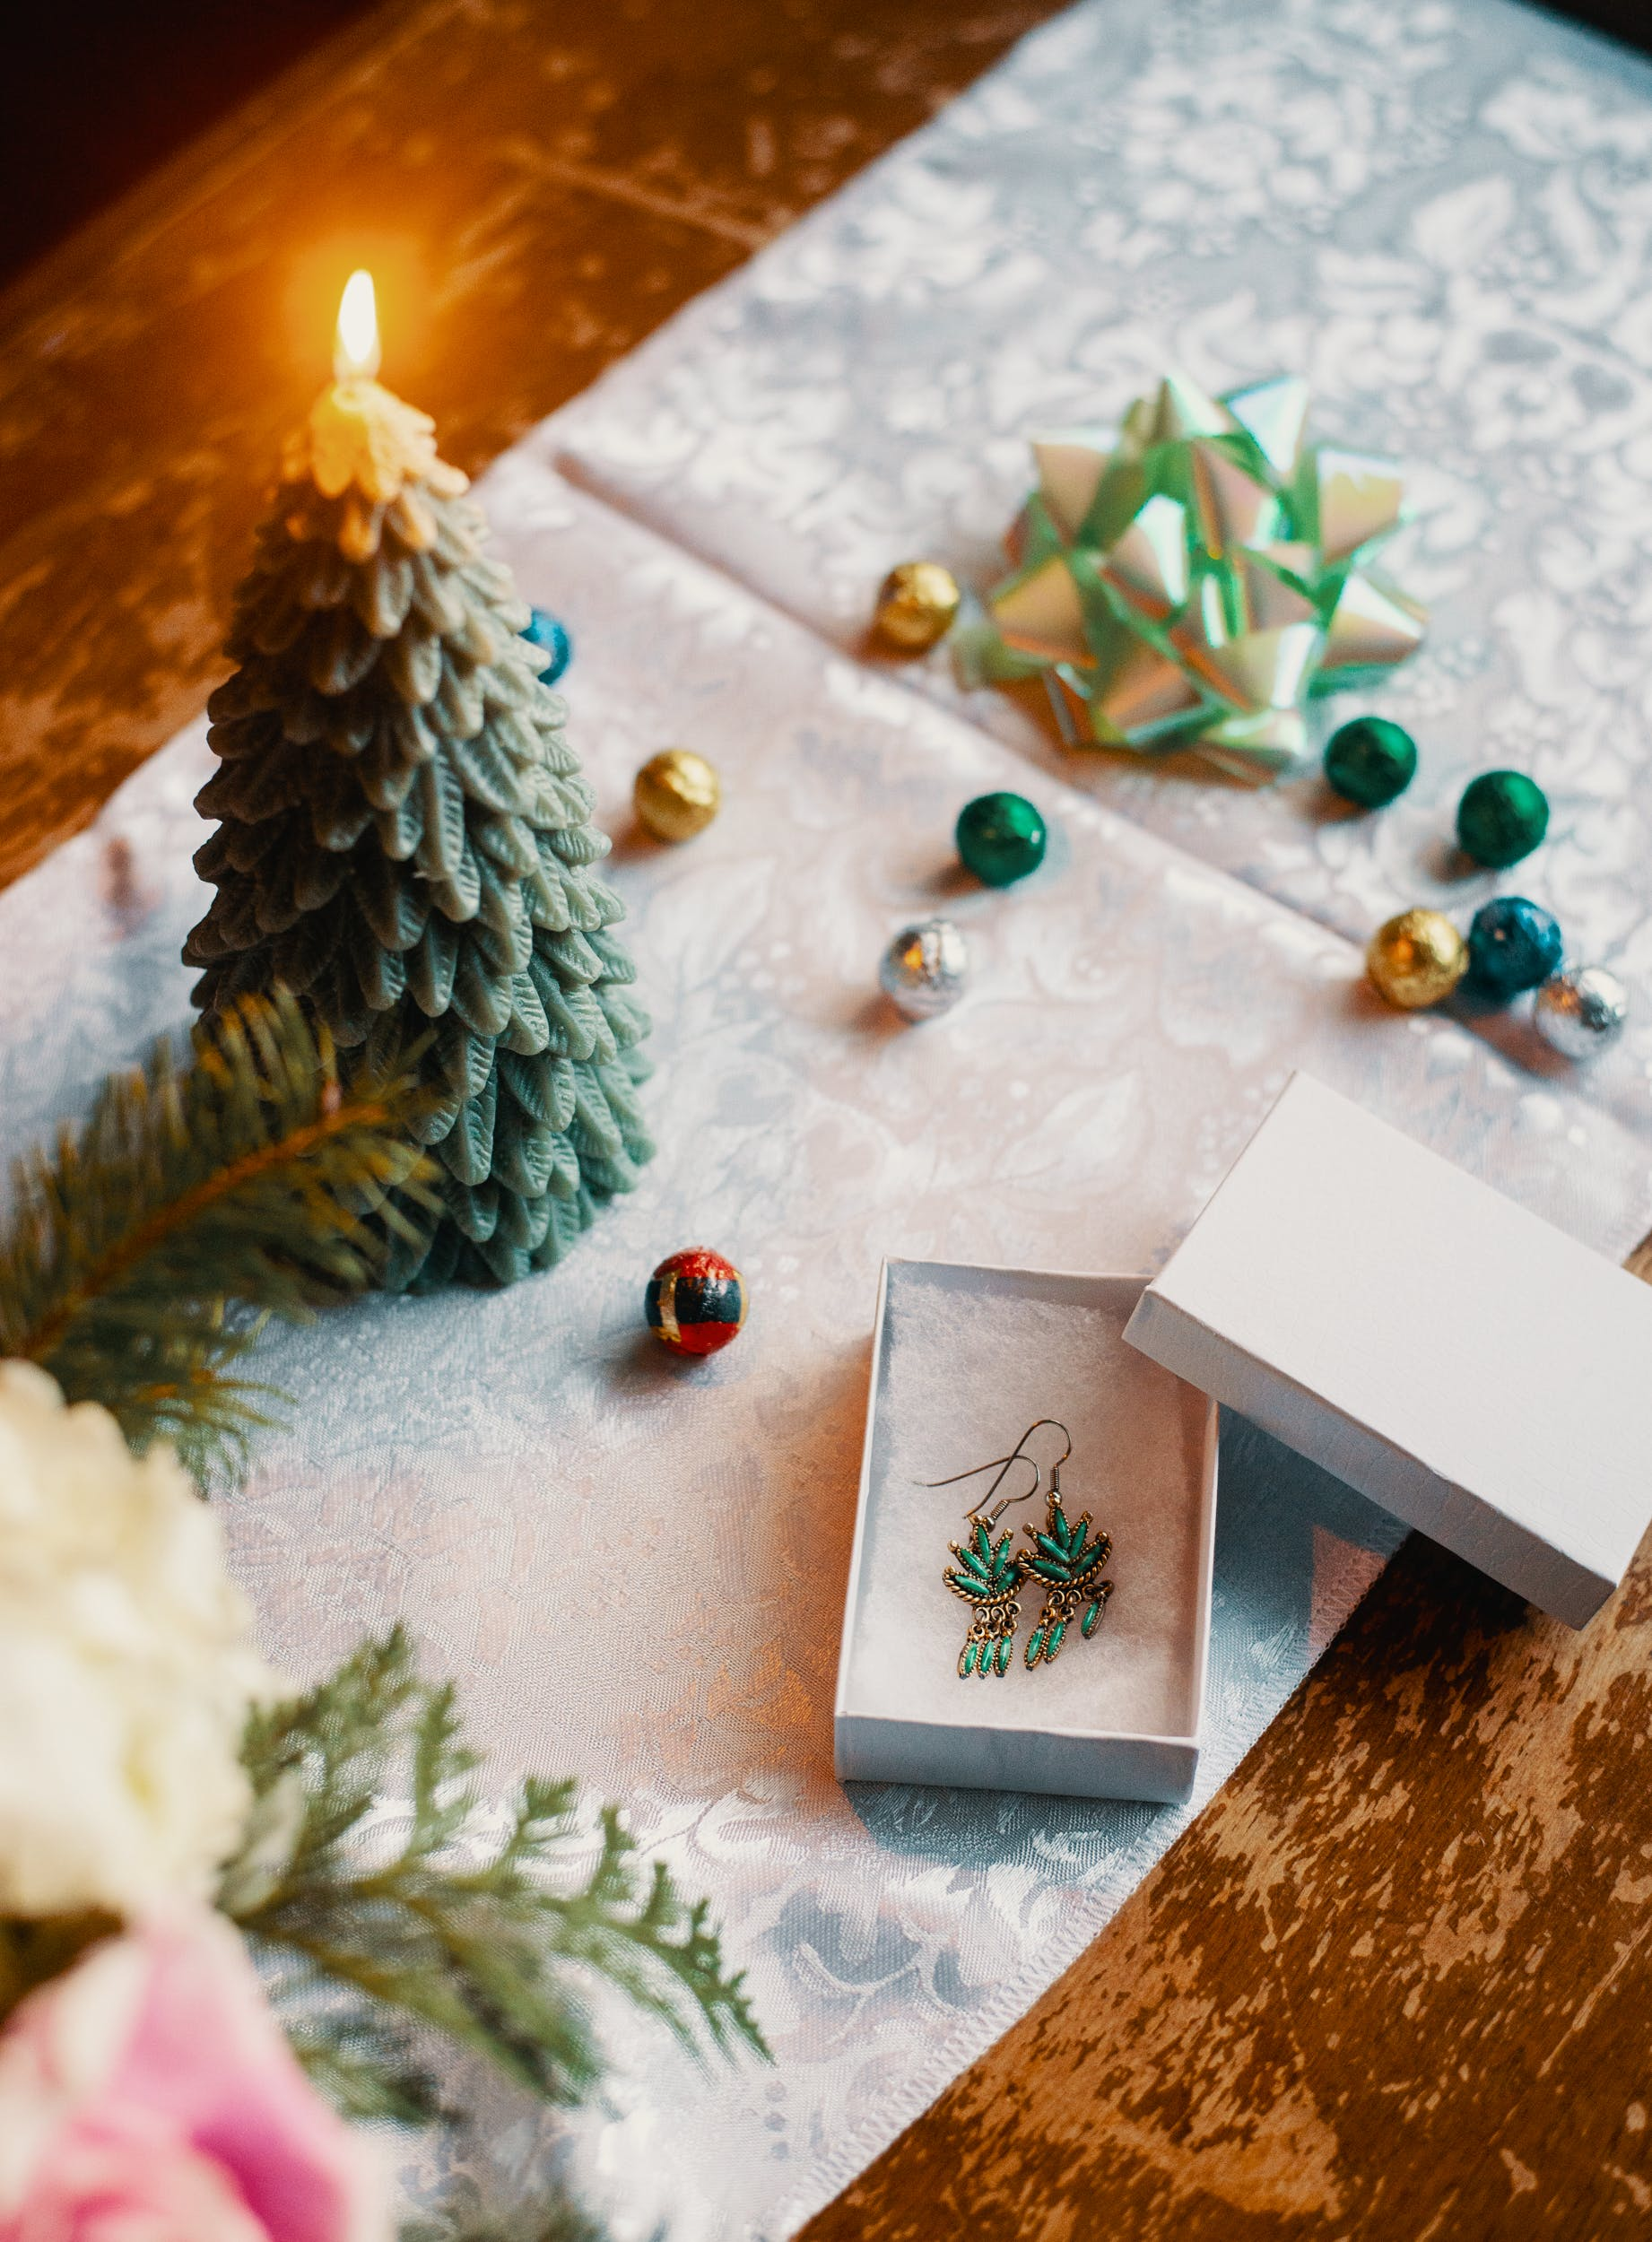 A decorative spread with a Christmas tree candle, several baubles and a green bow. There is a box with two weed leaf shaped earrings